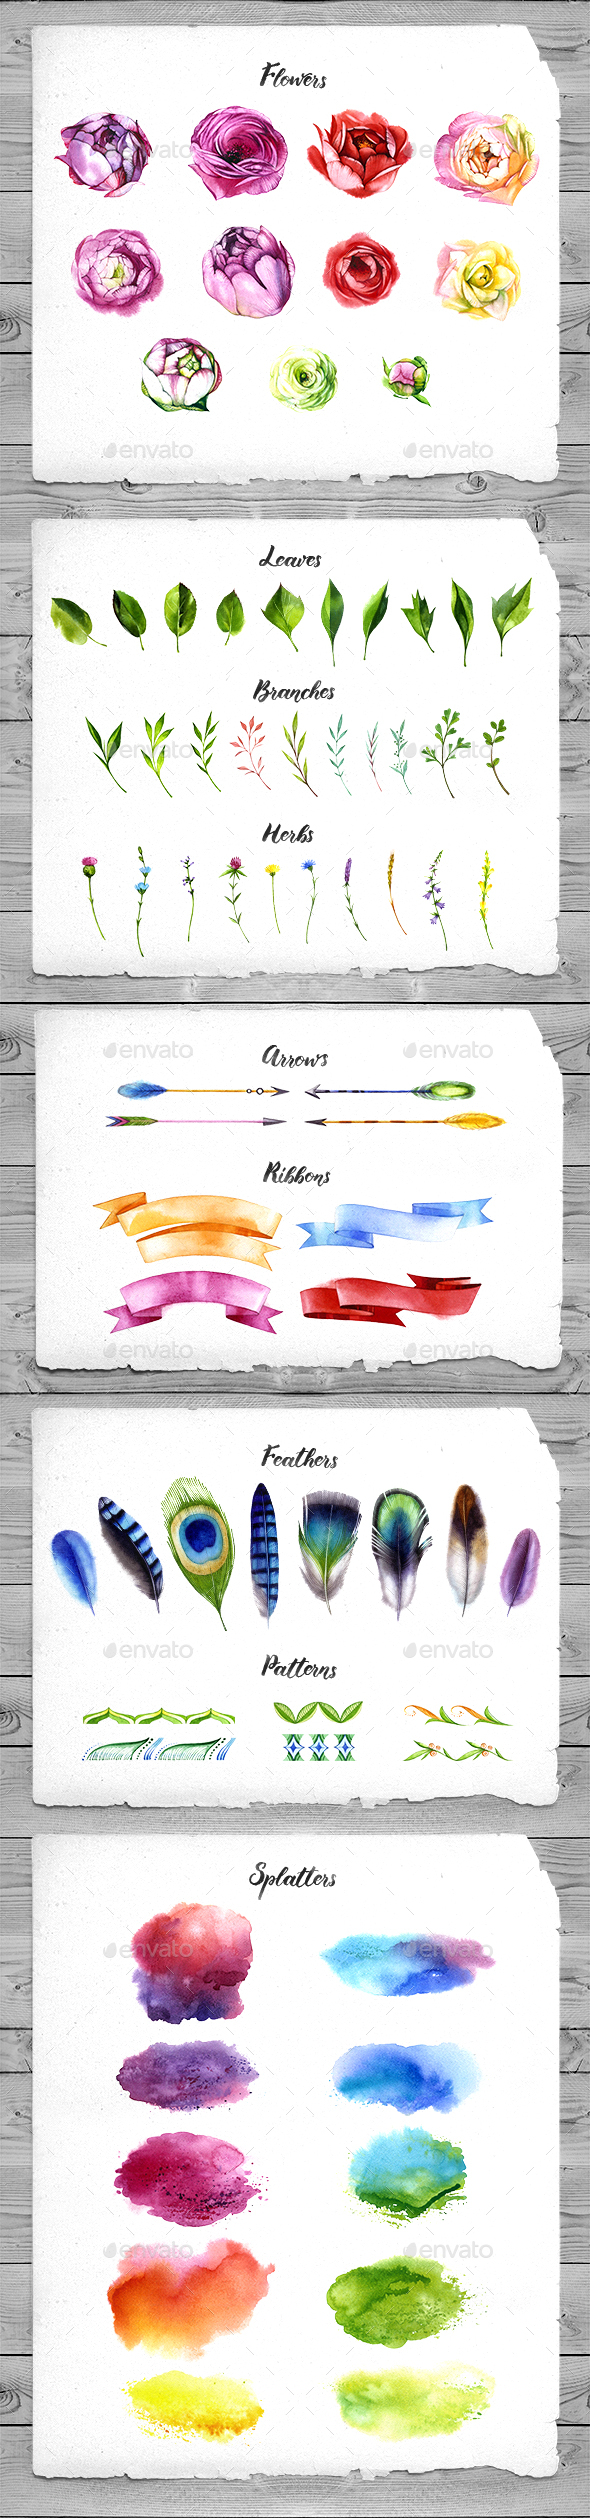 Watercolor Flowers – Hand Drawn Watercolor Floral Kit